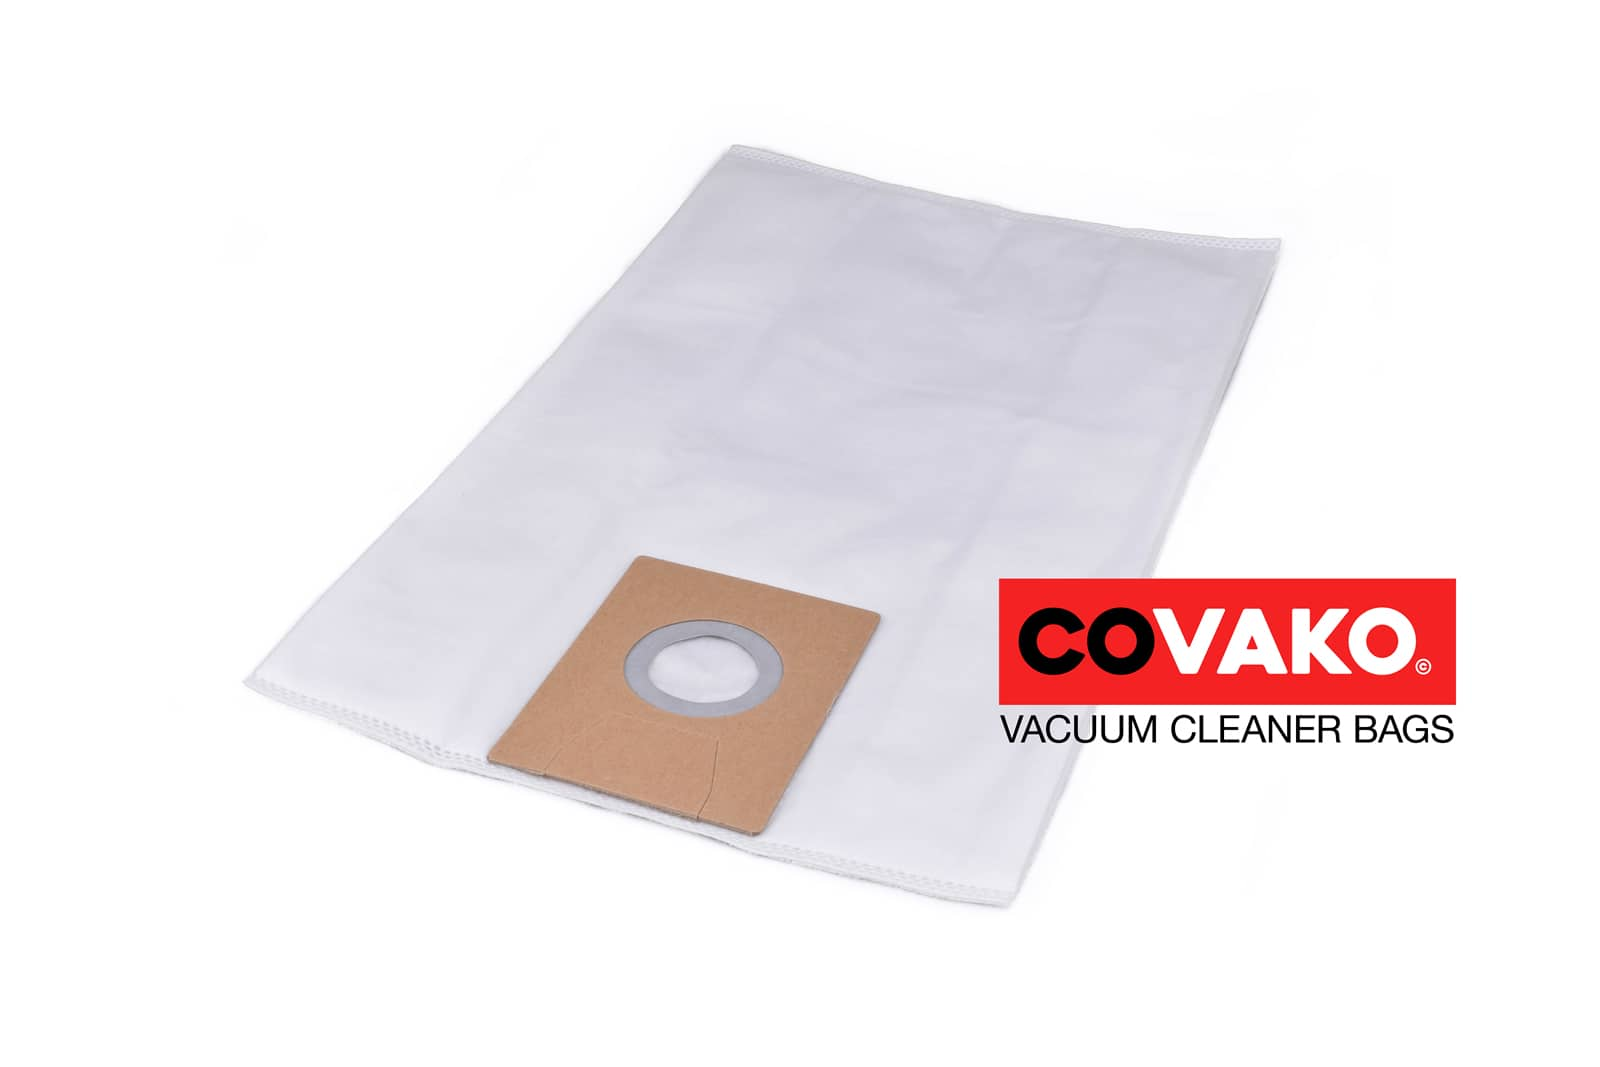 Nilco S 12 / Synthesis - Nilco vacuum cleaner bags